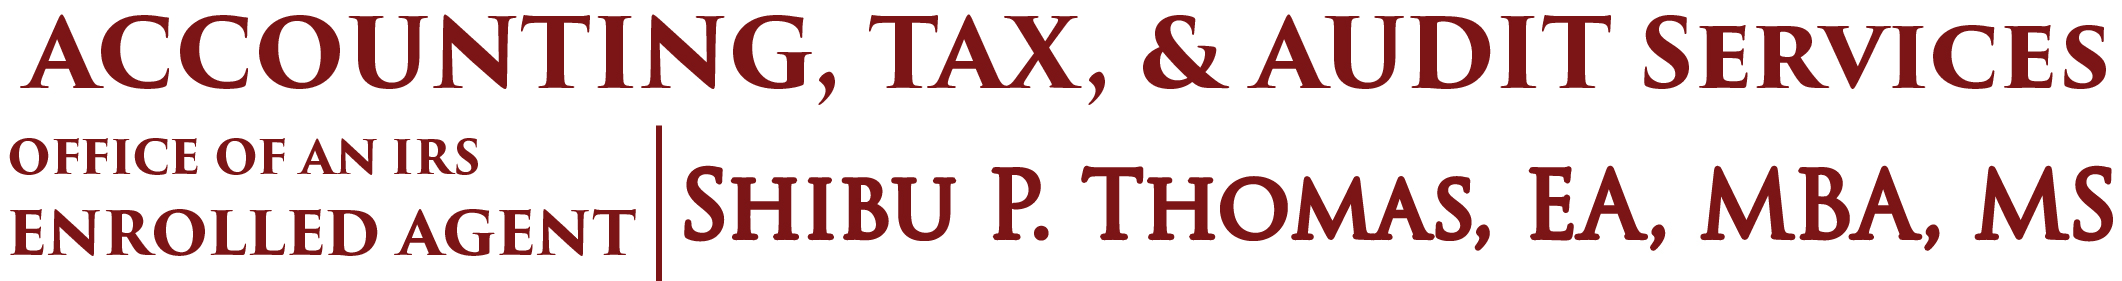 Staten Island, NY Accounting Firm | Bankruptcy Page | Accounting, Tax, & Audit Services Shibu P. Thomas, EA, MBA, MS